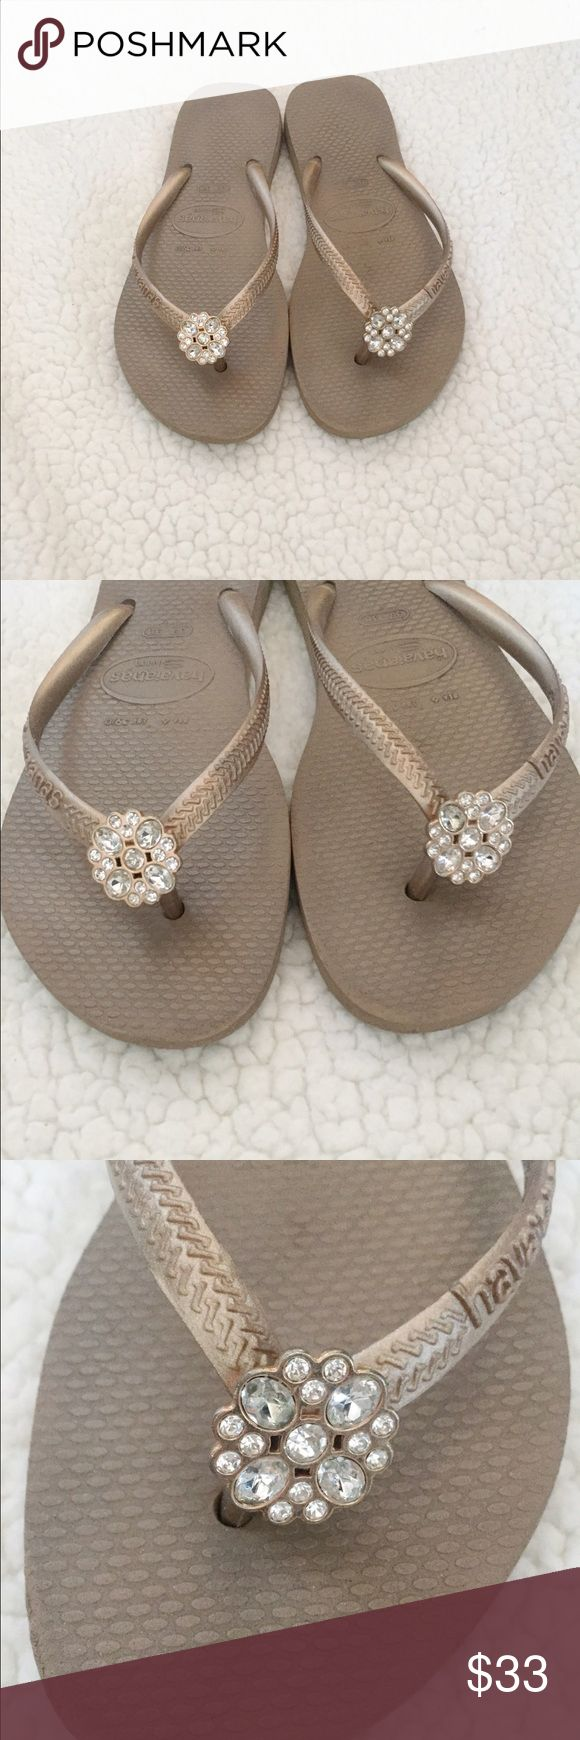 Havaina Brand Jeweled Flip Flops Tan coloring, with beautiful studded accents on the toe! Size 7! Great condition, will be cleaned before being sent out! Perfect for the spring and summer coming up! Very good quality flip flop! Havaianas Shoes Sandals